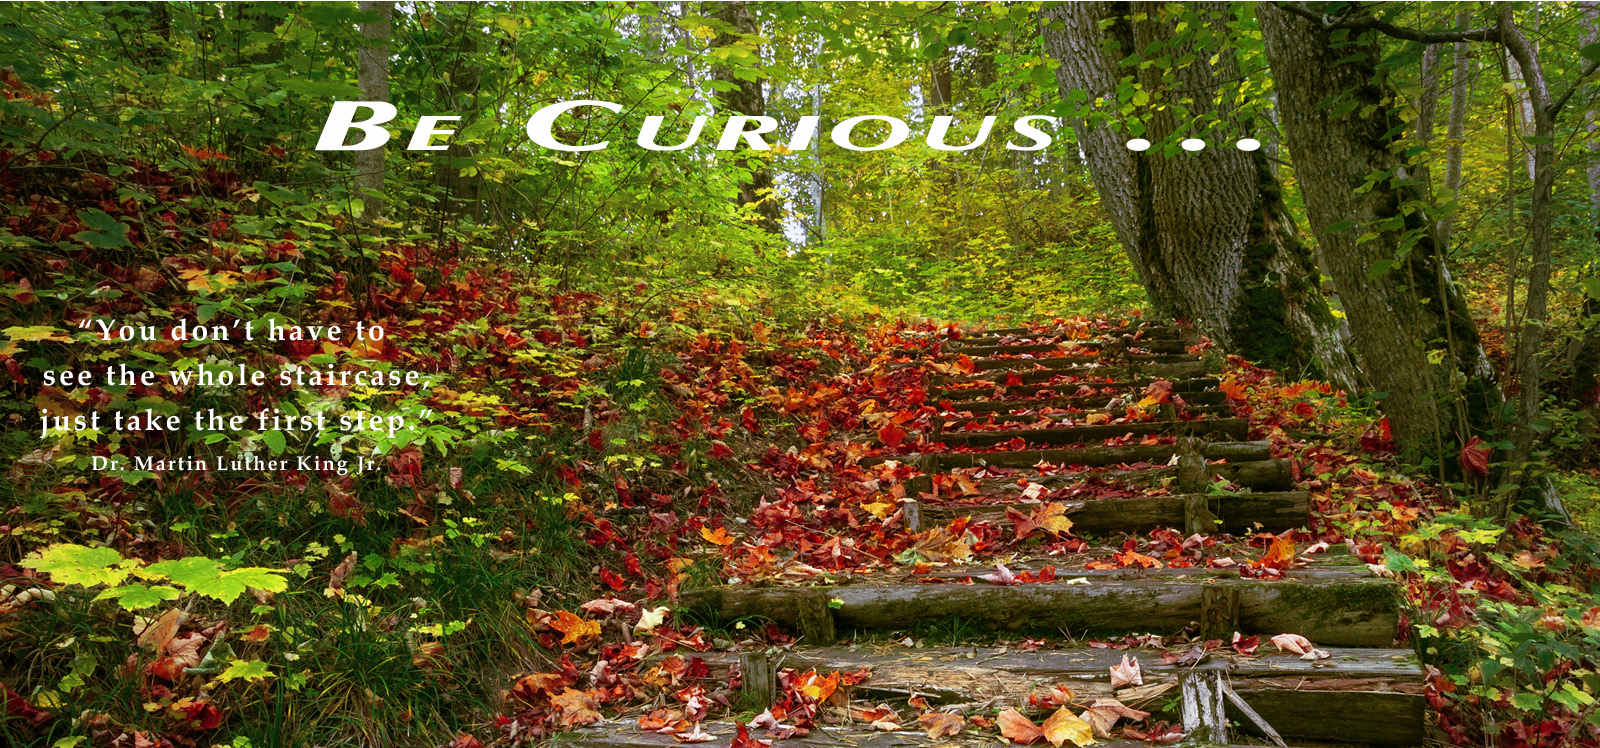 Forest path depicting being curious